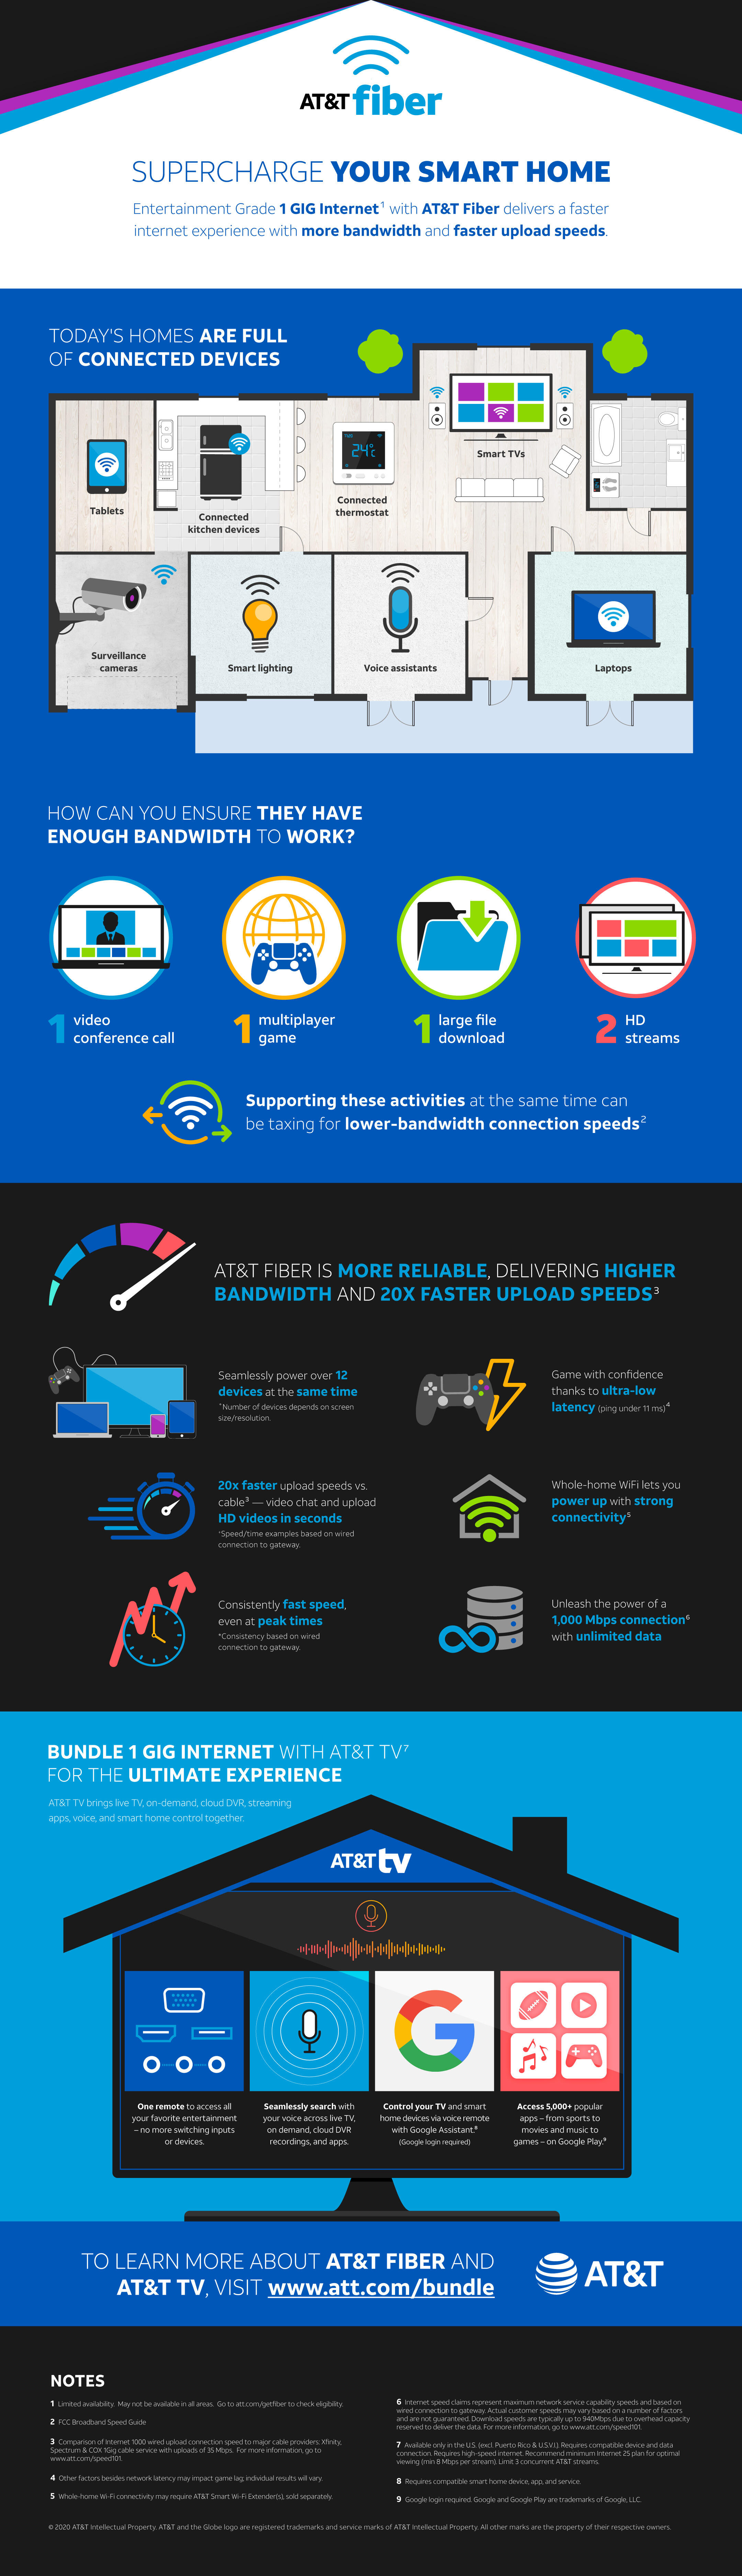 at-t-infographic-smarthome-experience-r10